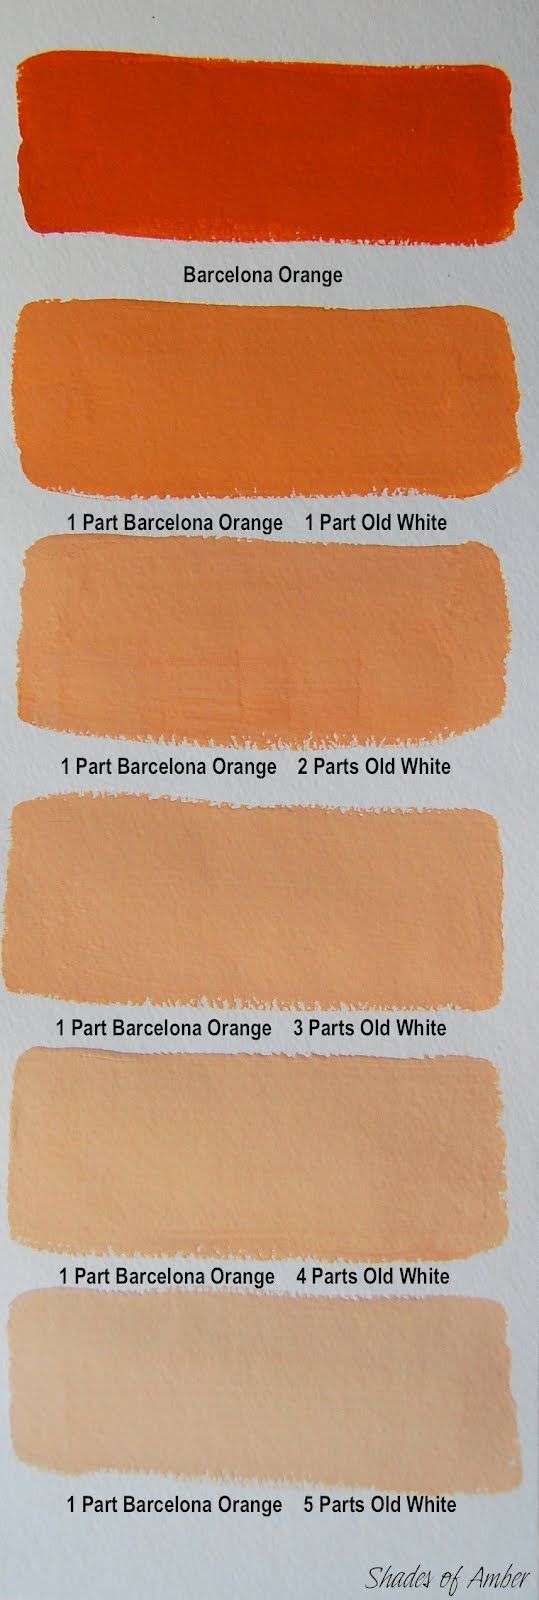 Shades Of Amber Chalk Paint Color Theory